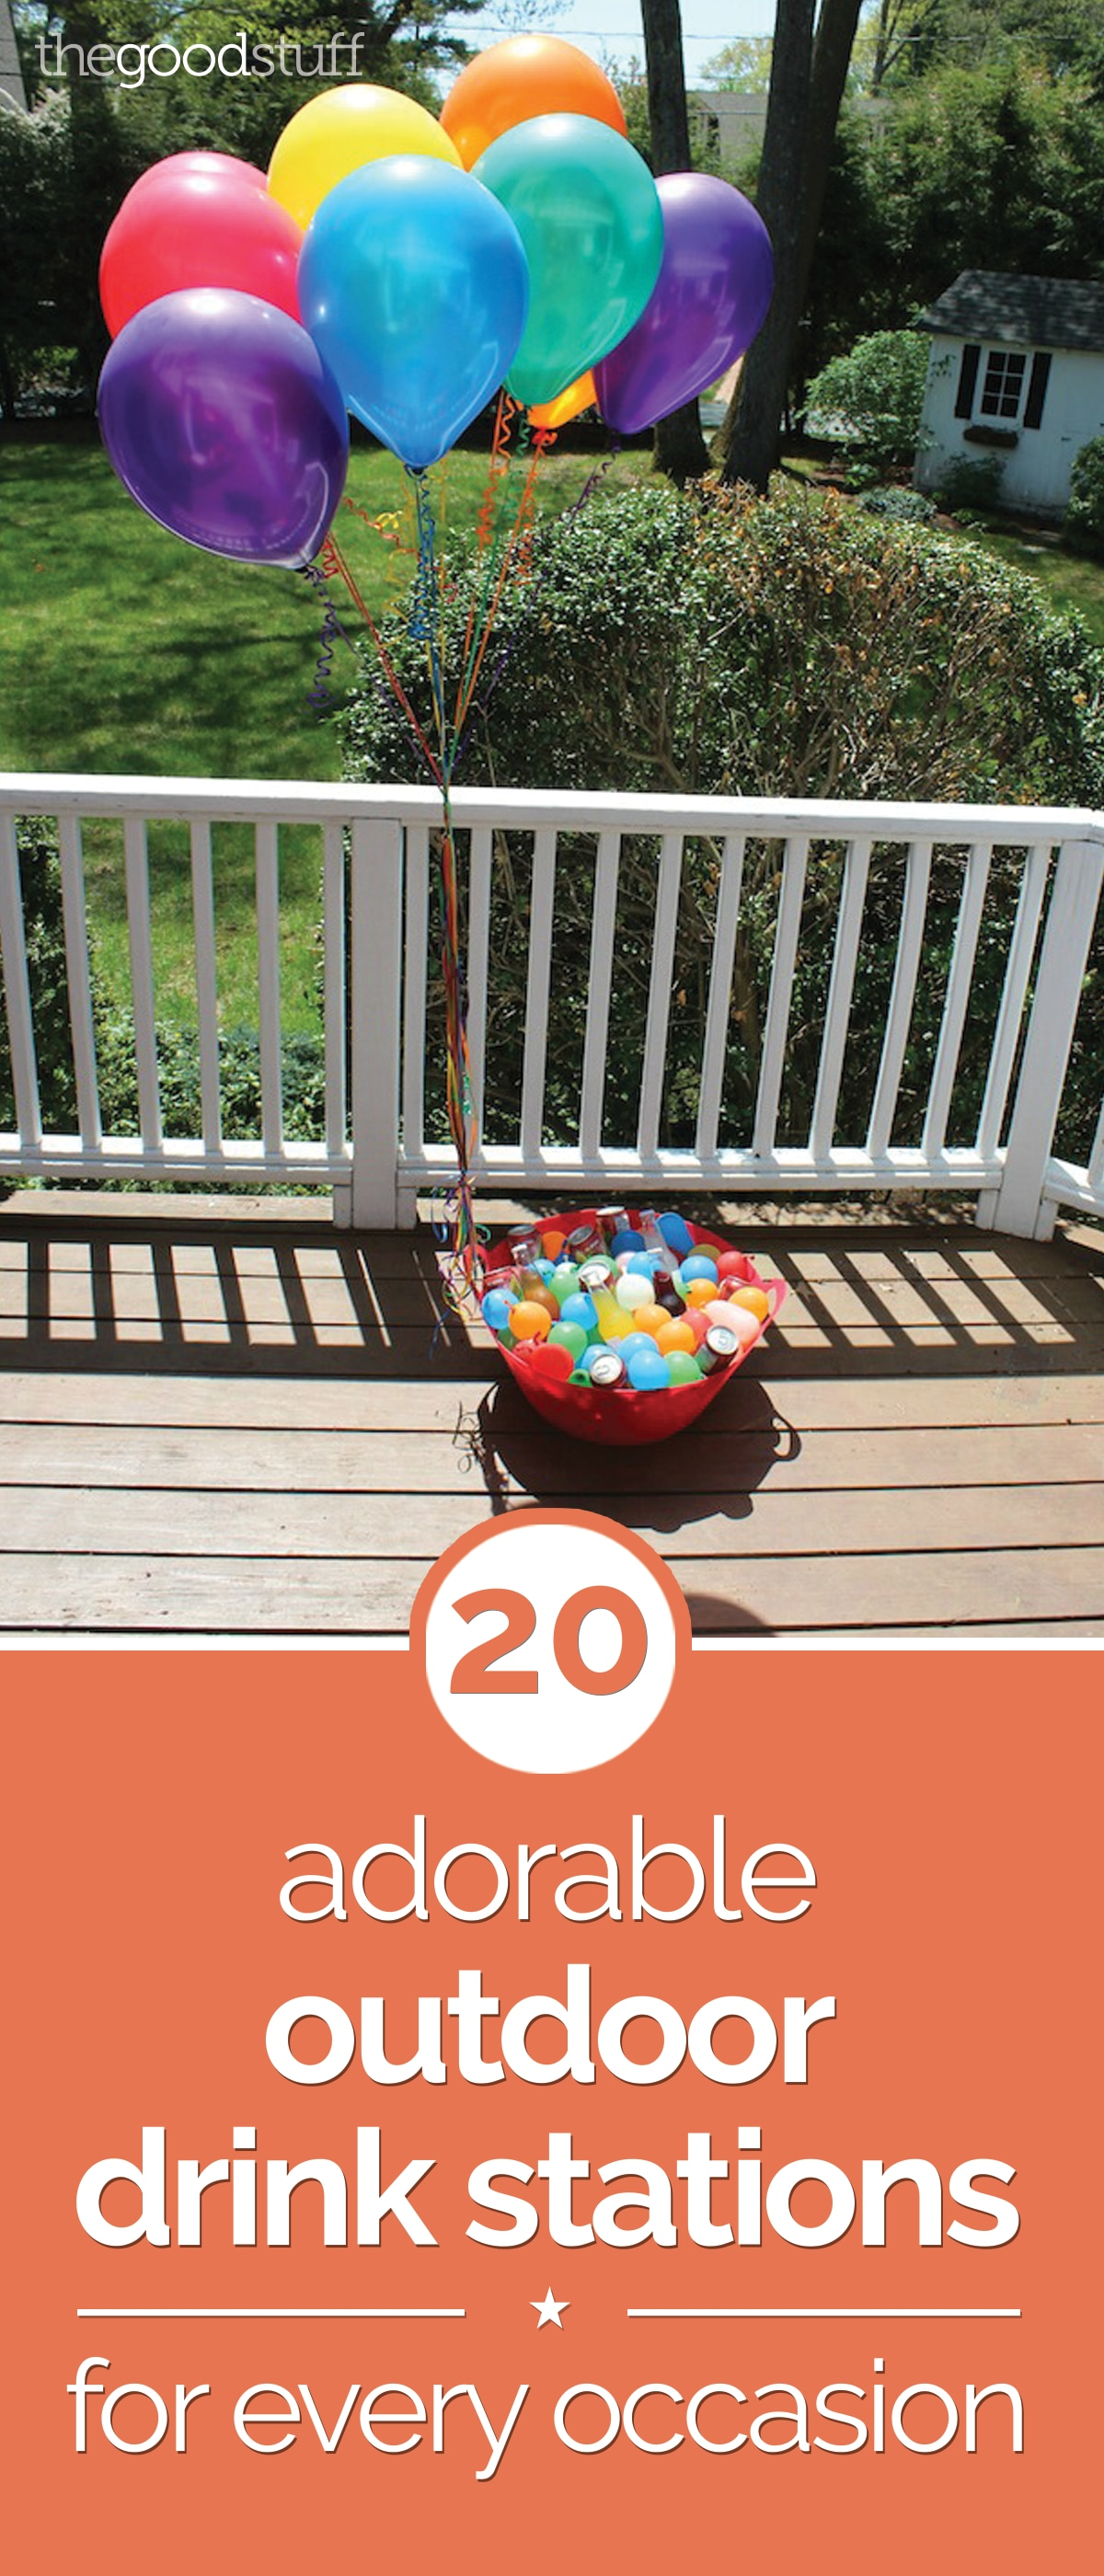 20 Adorable Outdoor Drink Stations For Every Occasion | thegoodstuff